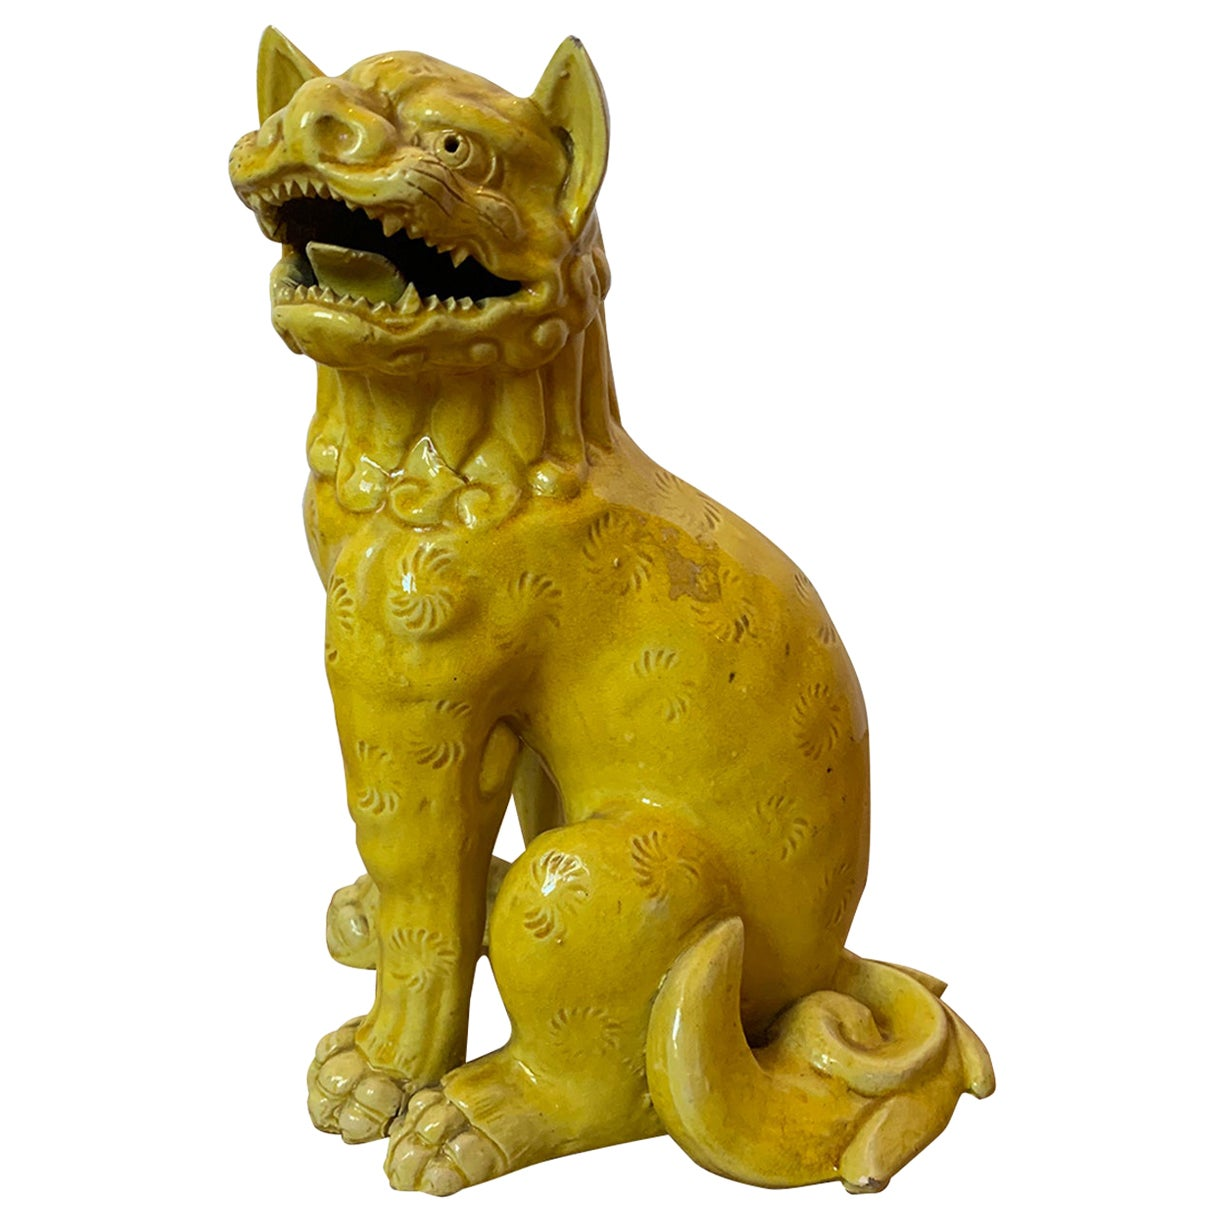 19th Century Chinese Imperial Yellow Handmade Pottery Foo Dog, Unmarked